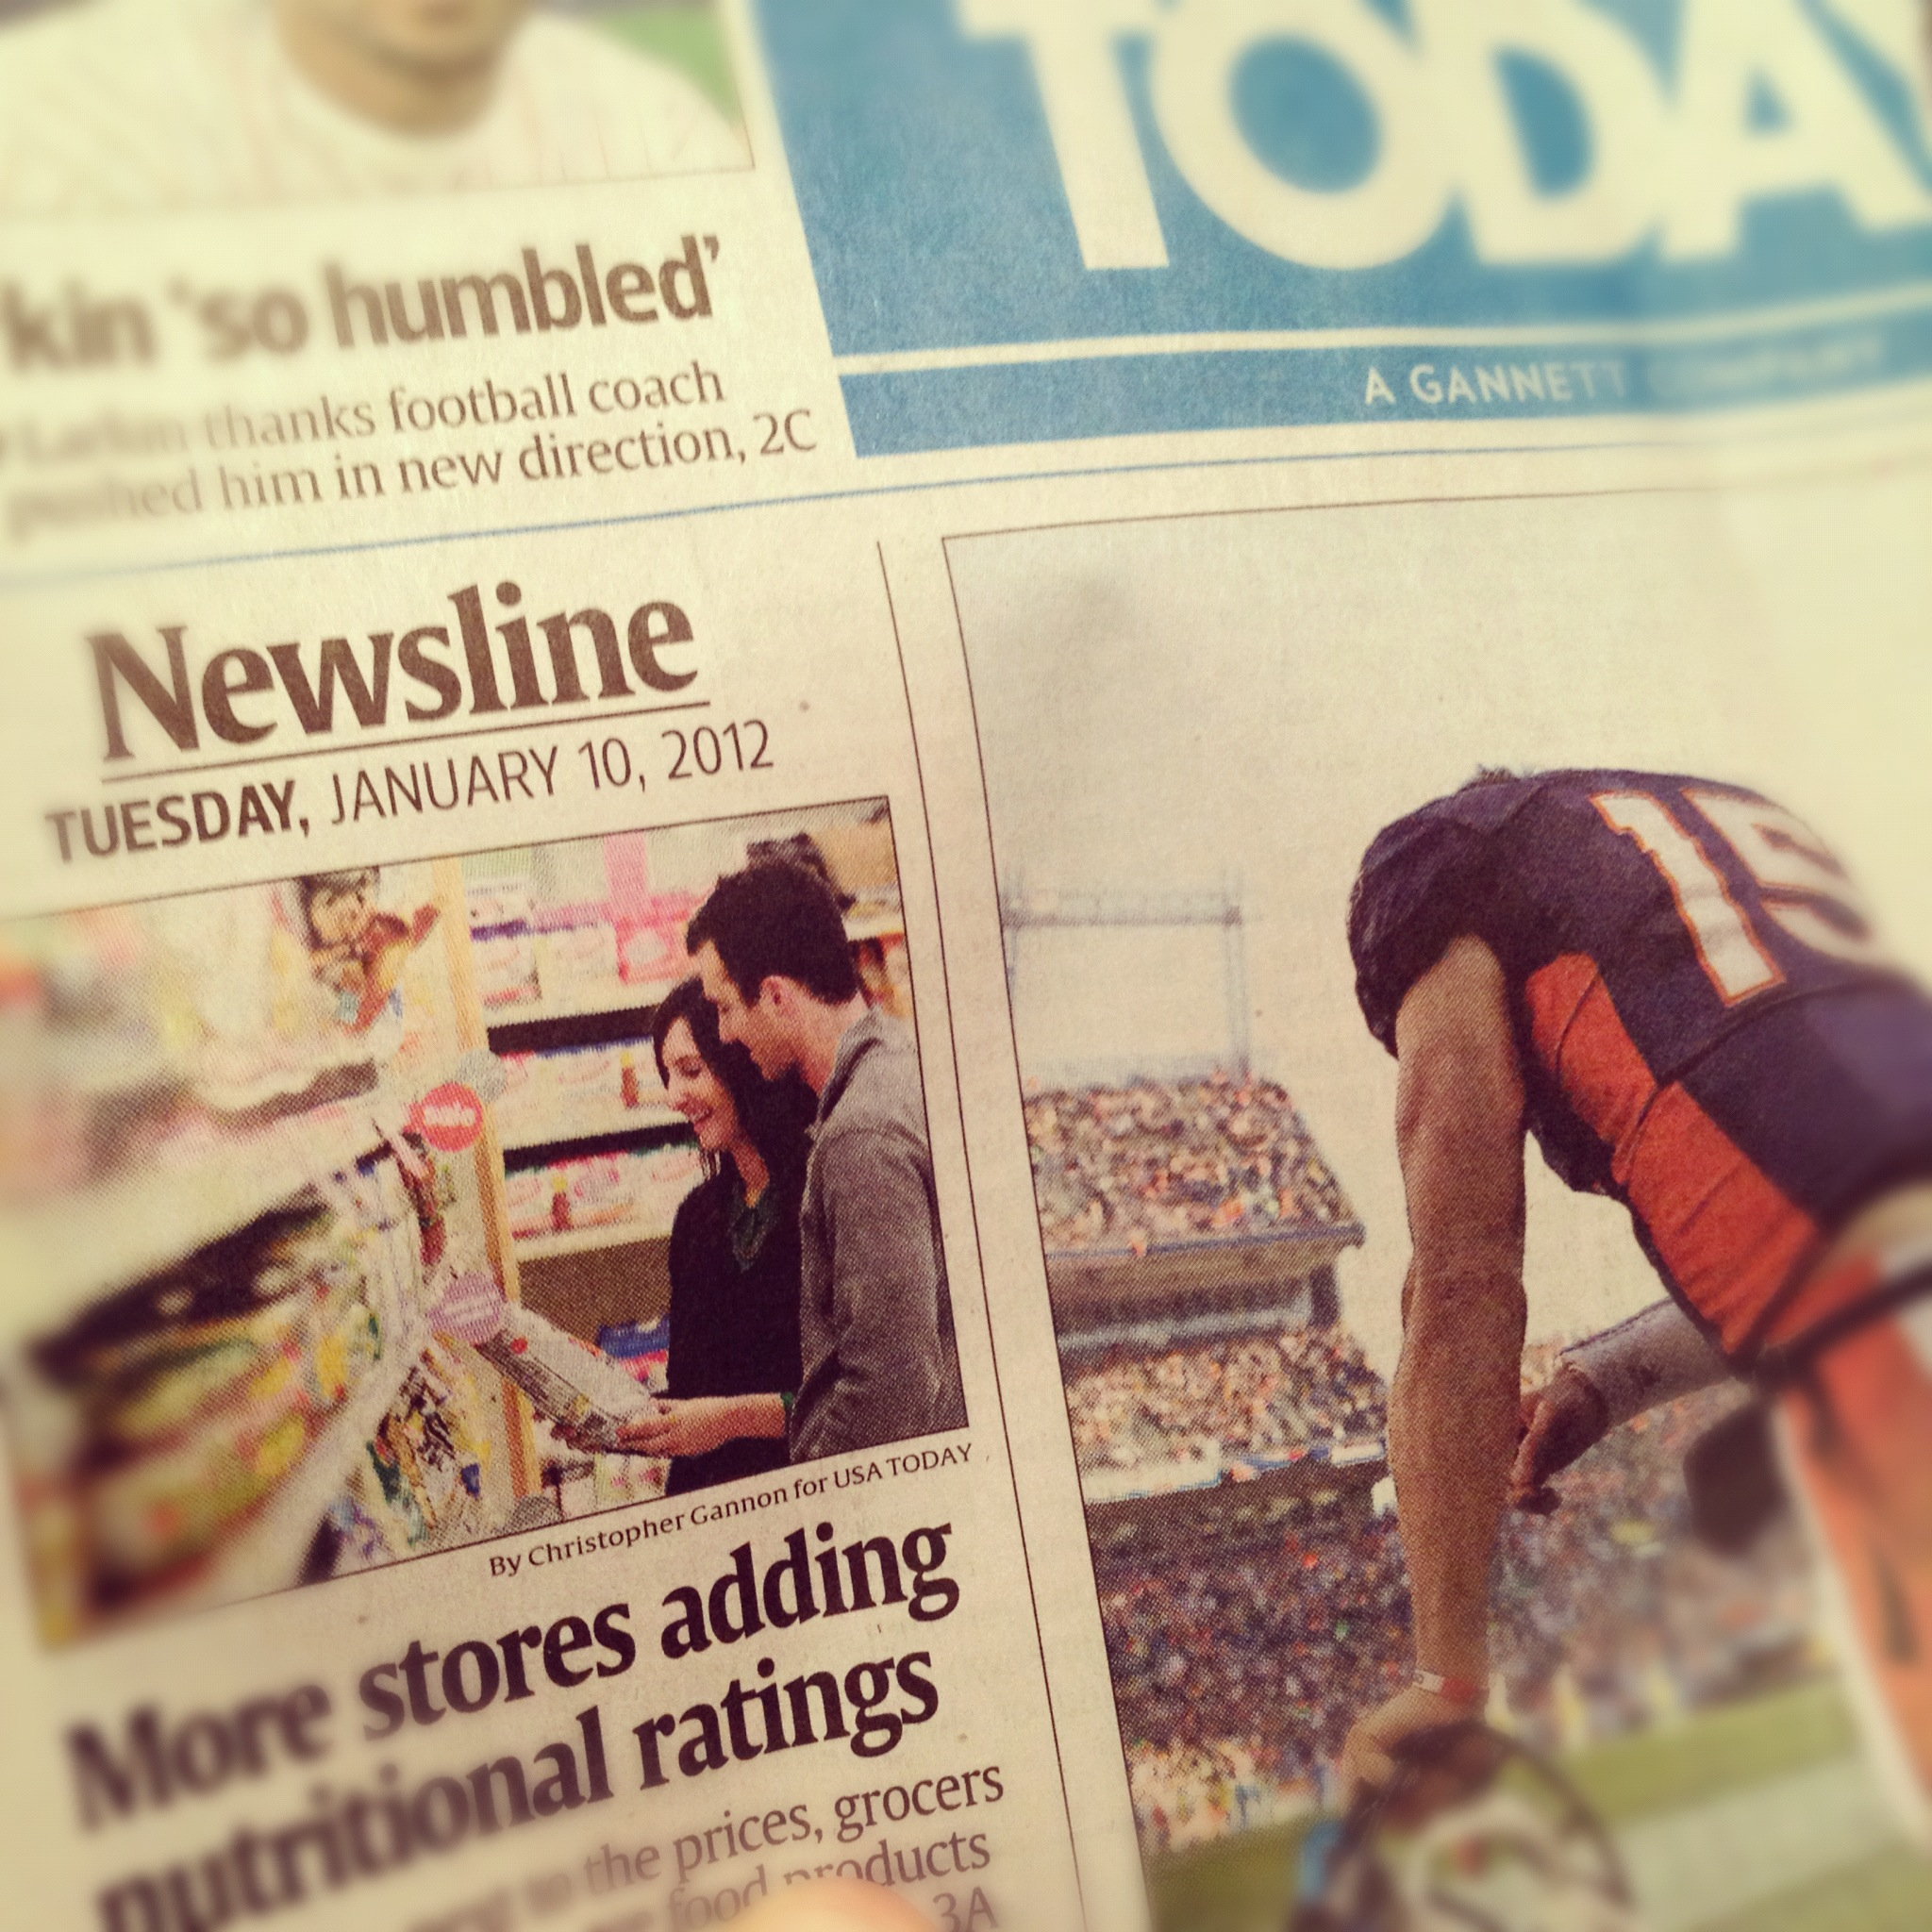 USA Today next to Tim Tebow